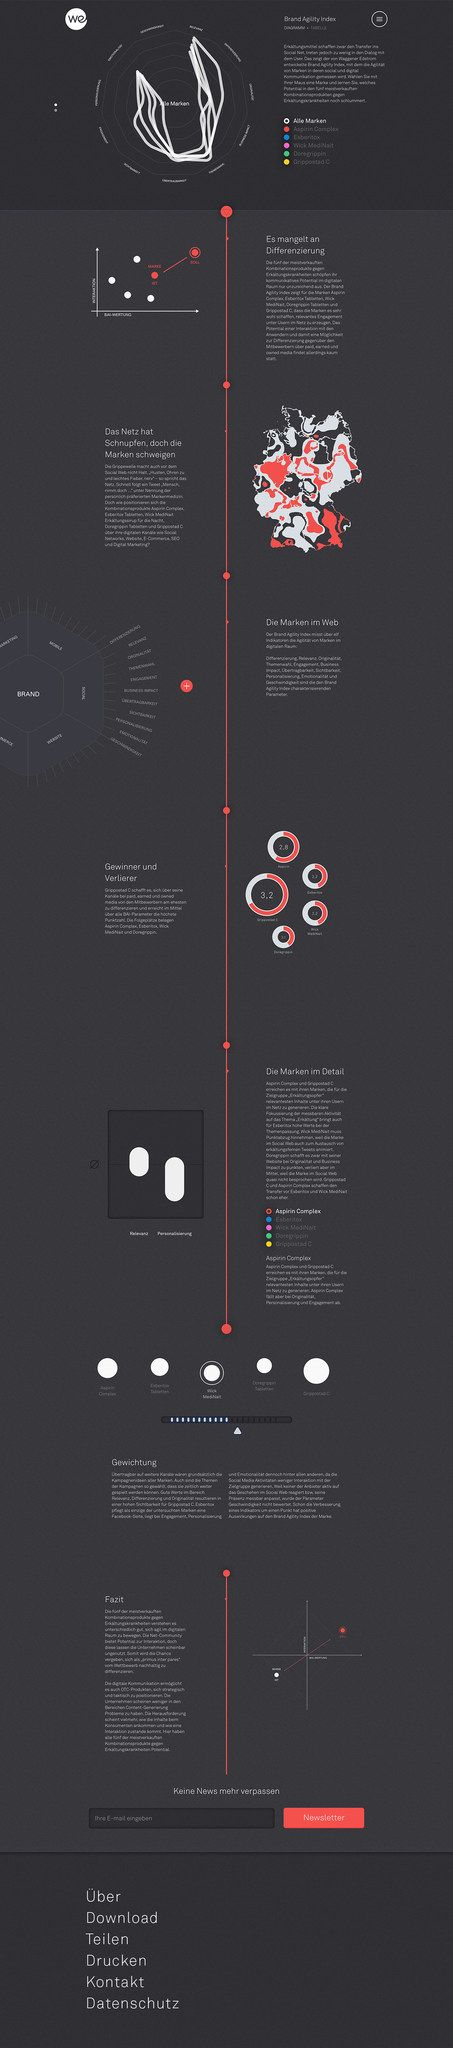 Interesting One Pager filled with unique interactive infographics forming an annual 'Brand Agility Index'. Great to see this transformation from traditional print into a Single Page website as mentioned in the build notes (in the full review).